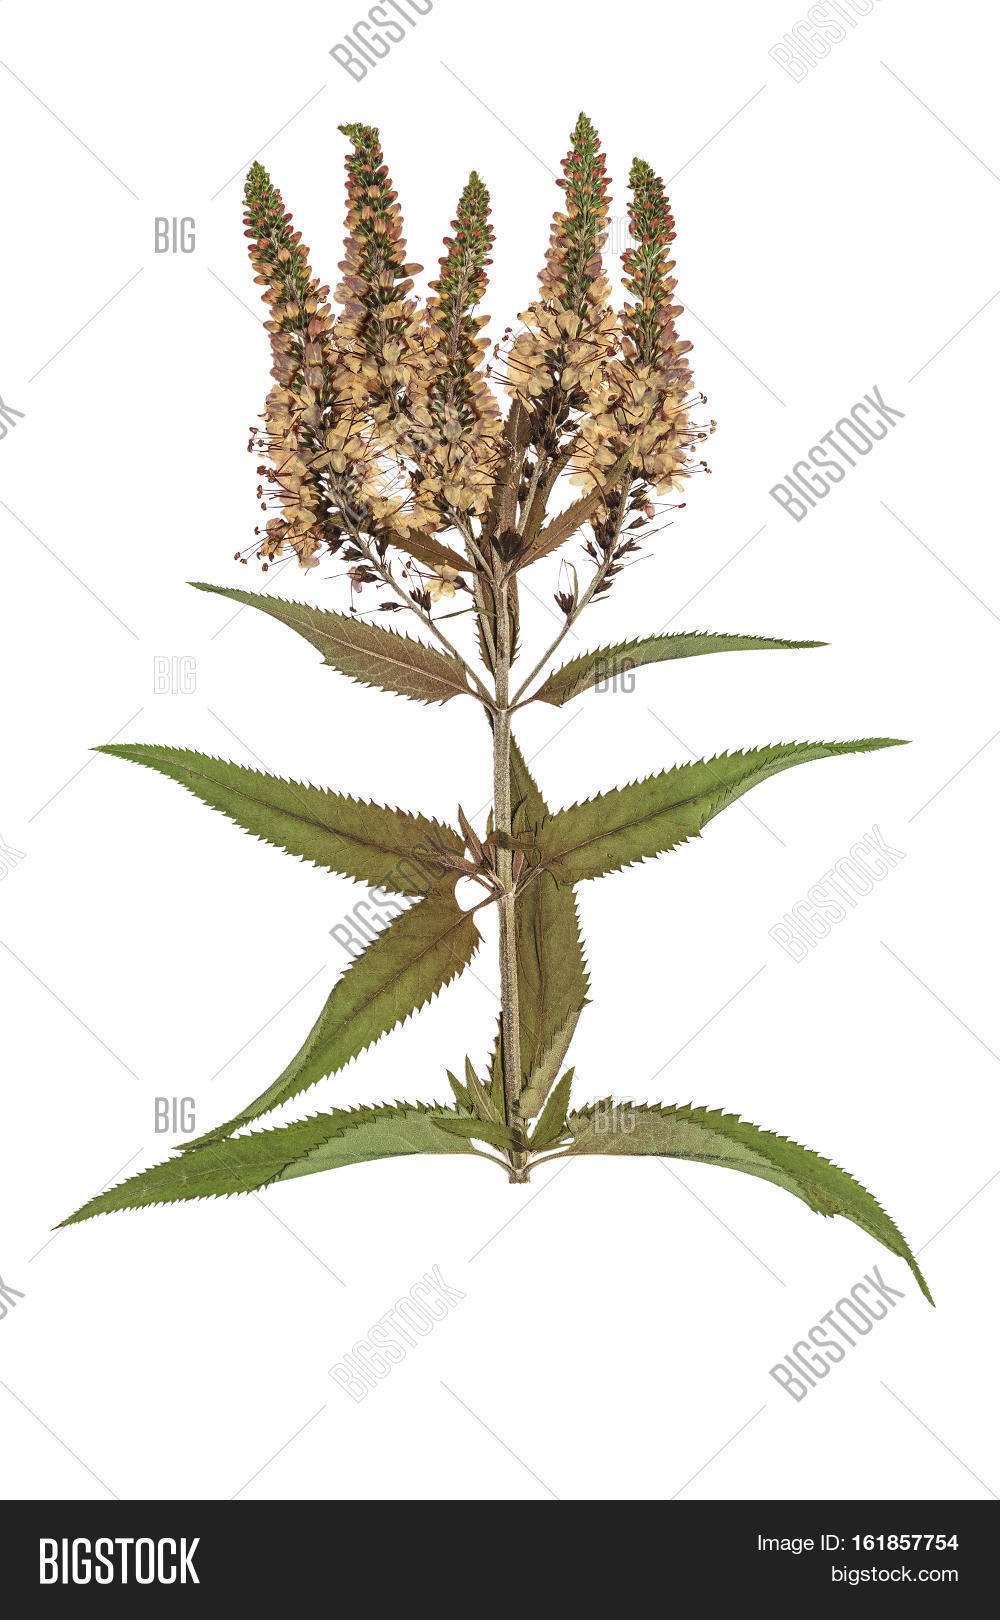 How to scrapbook dried flowers - Pressed And Dried Flowers Veronica Spicata Isolated On White Background For Use In Scrapbooking